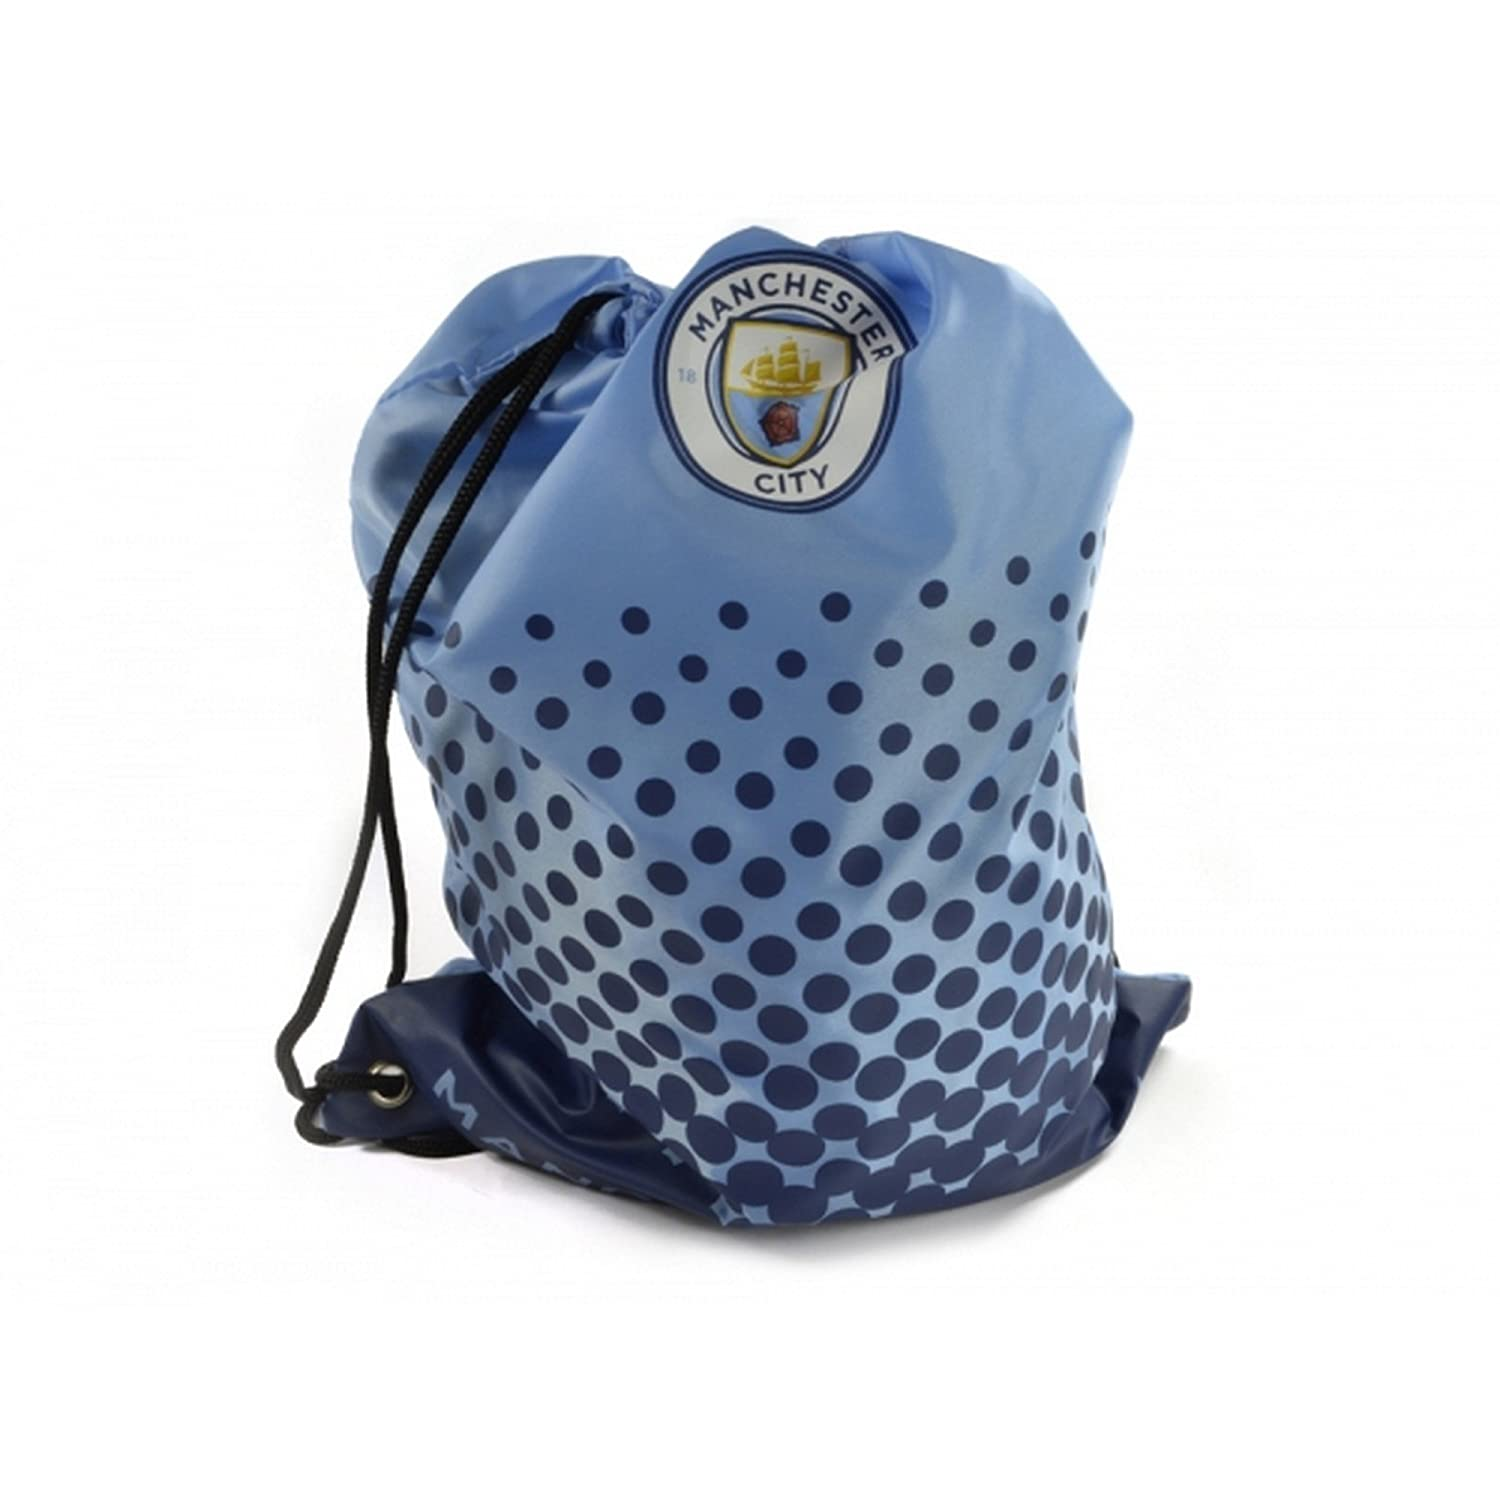 Manchester City FC Official Football Fade Design Gym Bag (One Size) (Light Blue/Navy)